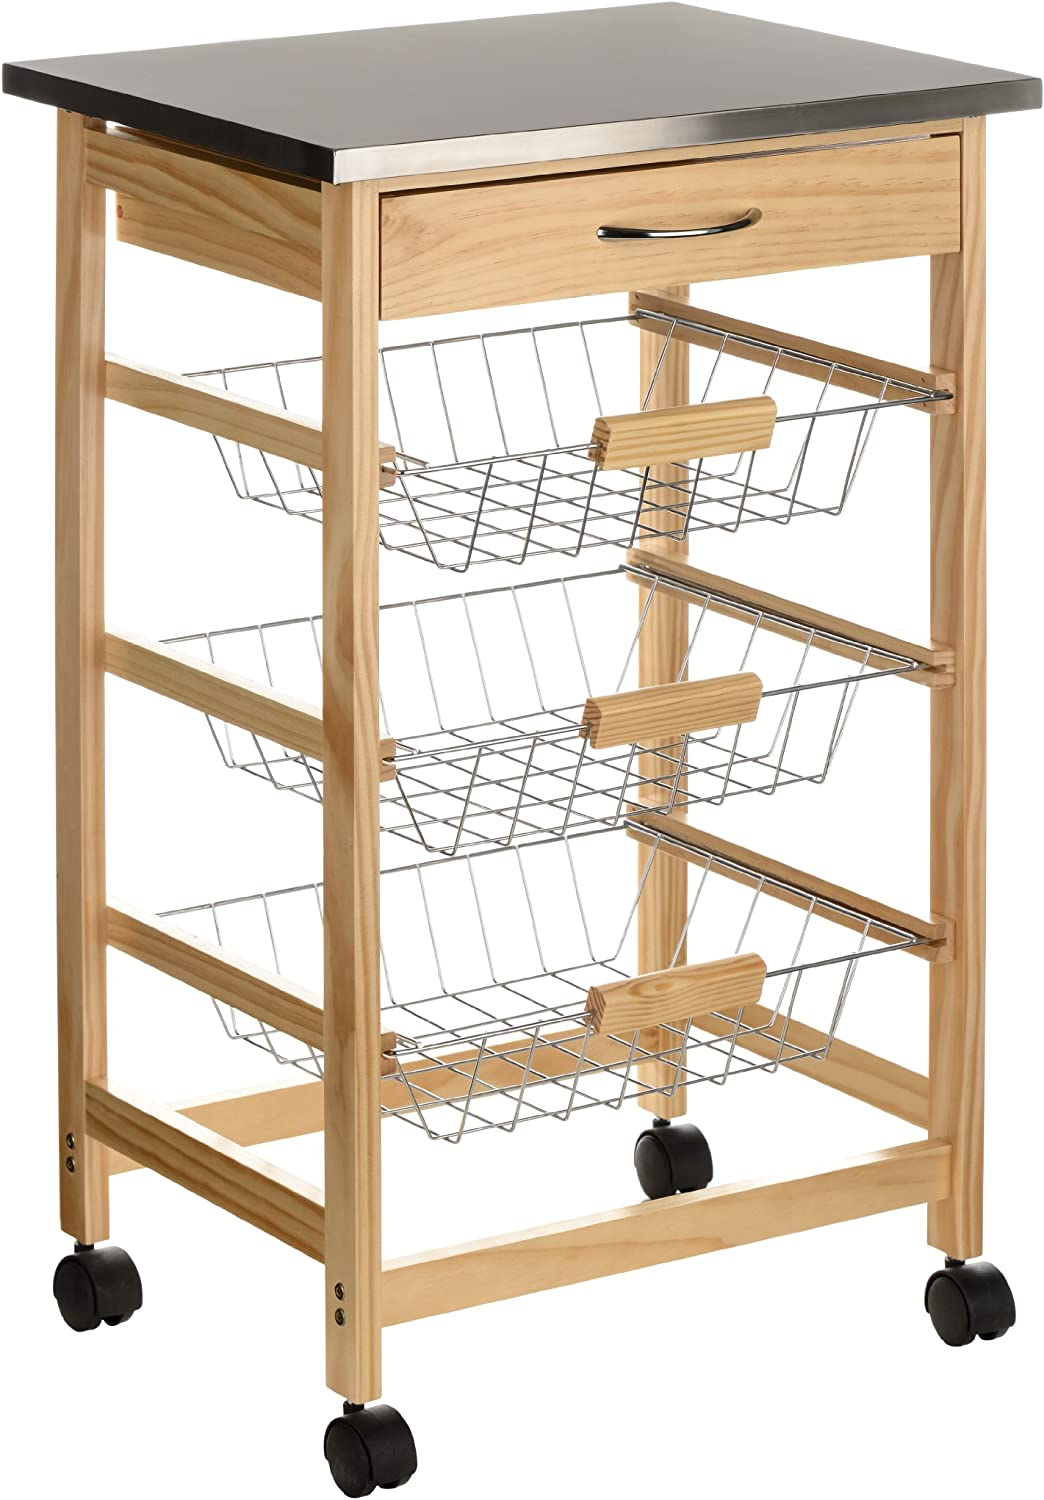 Premier Housewares Pinewood Kitchen Trolley with Stainless Steel Top by Premier Housewares